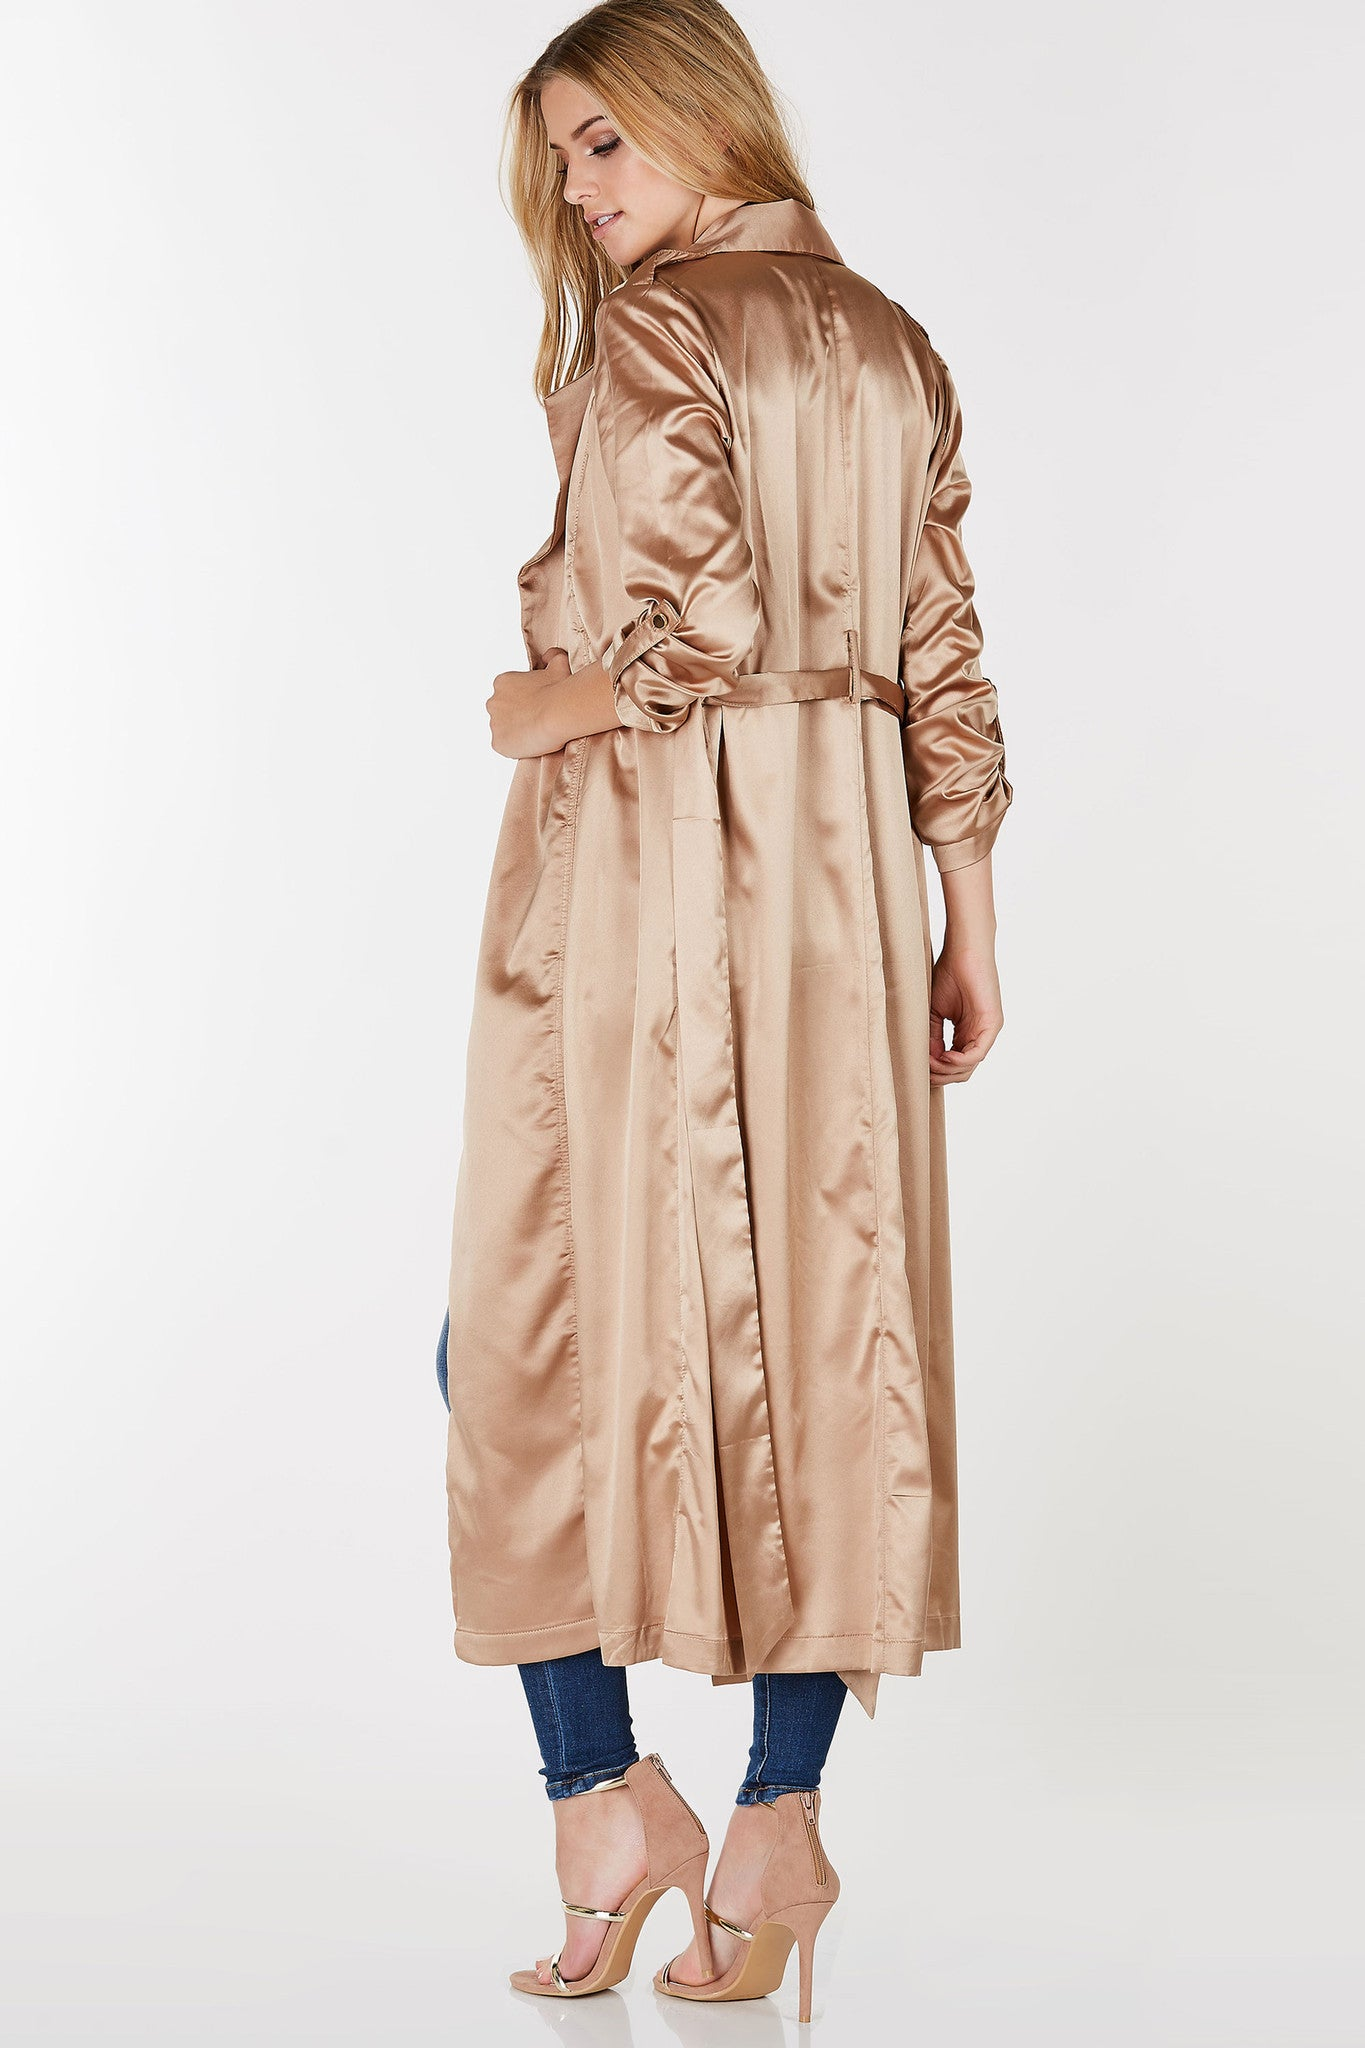 Longline duster coat with satin finish. lapels with open front and waist tie for closure.